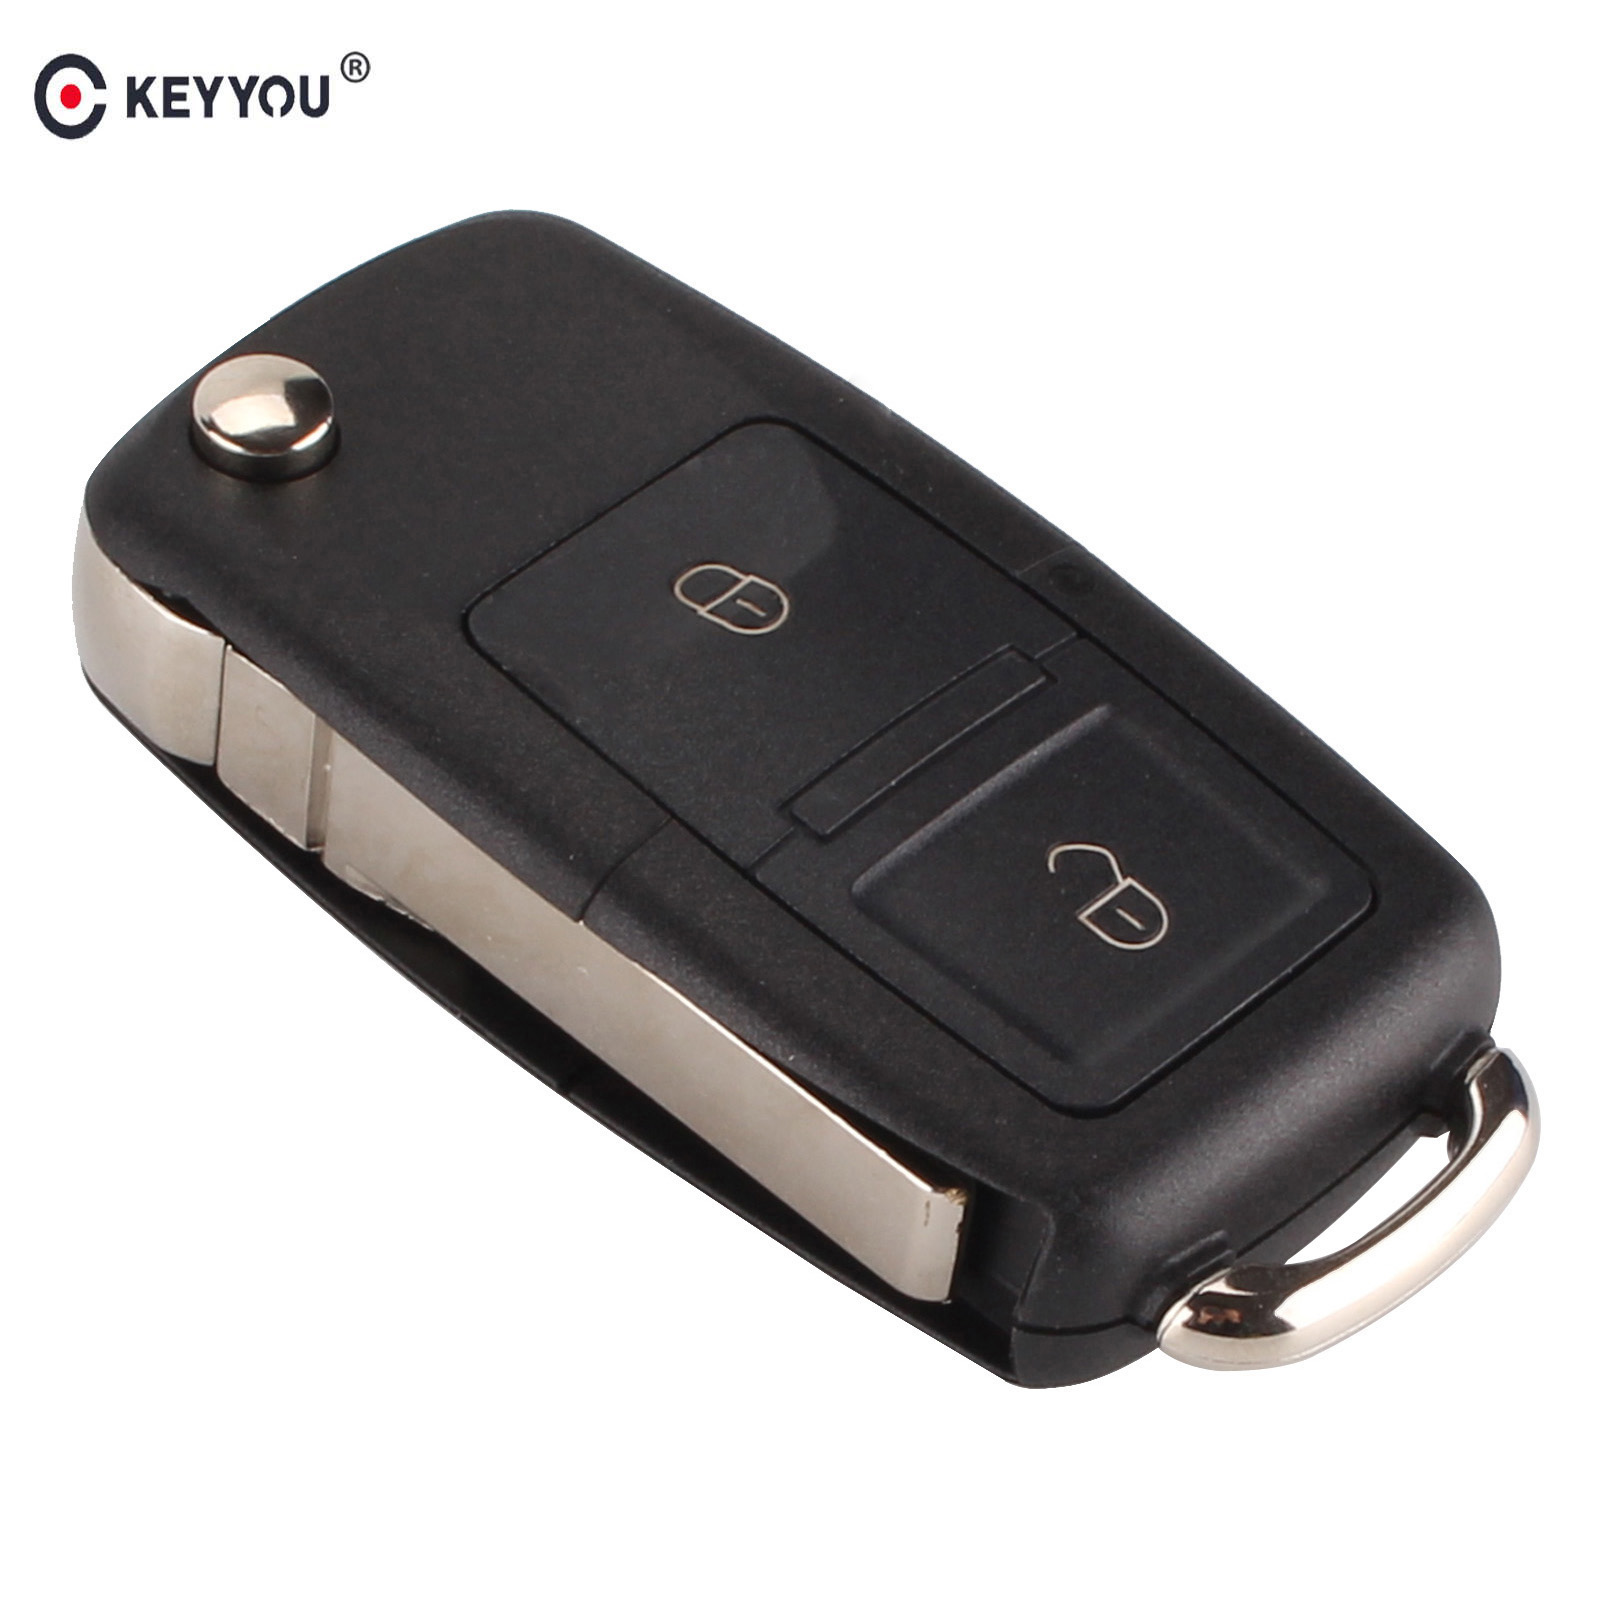 KEYYOU 2 Buttons FOB Shell For Vw VOLKSWAGEN MK4 Seat Altea Alhambra Ibiza